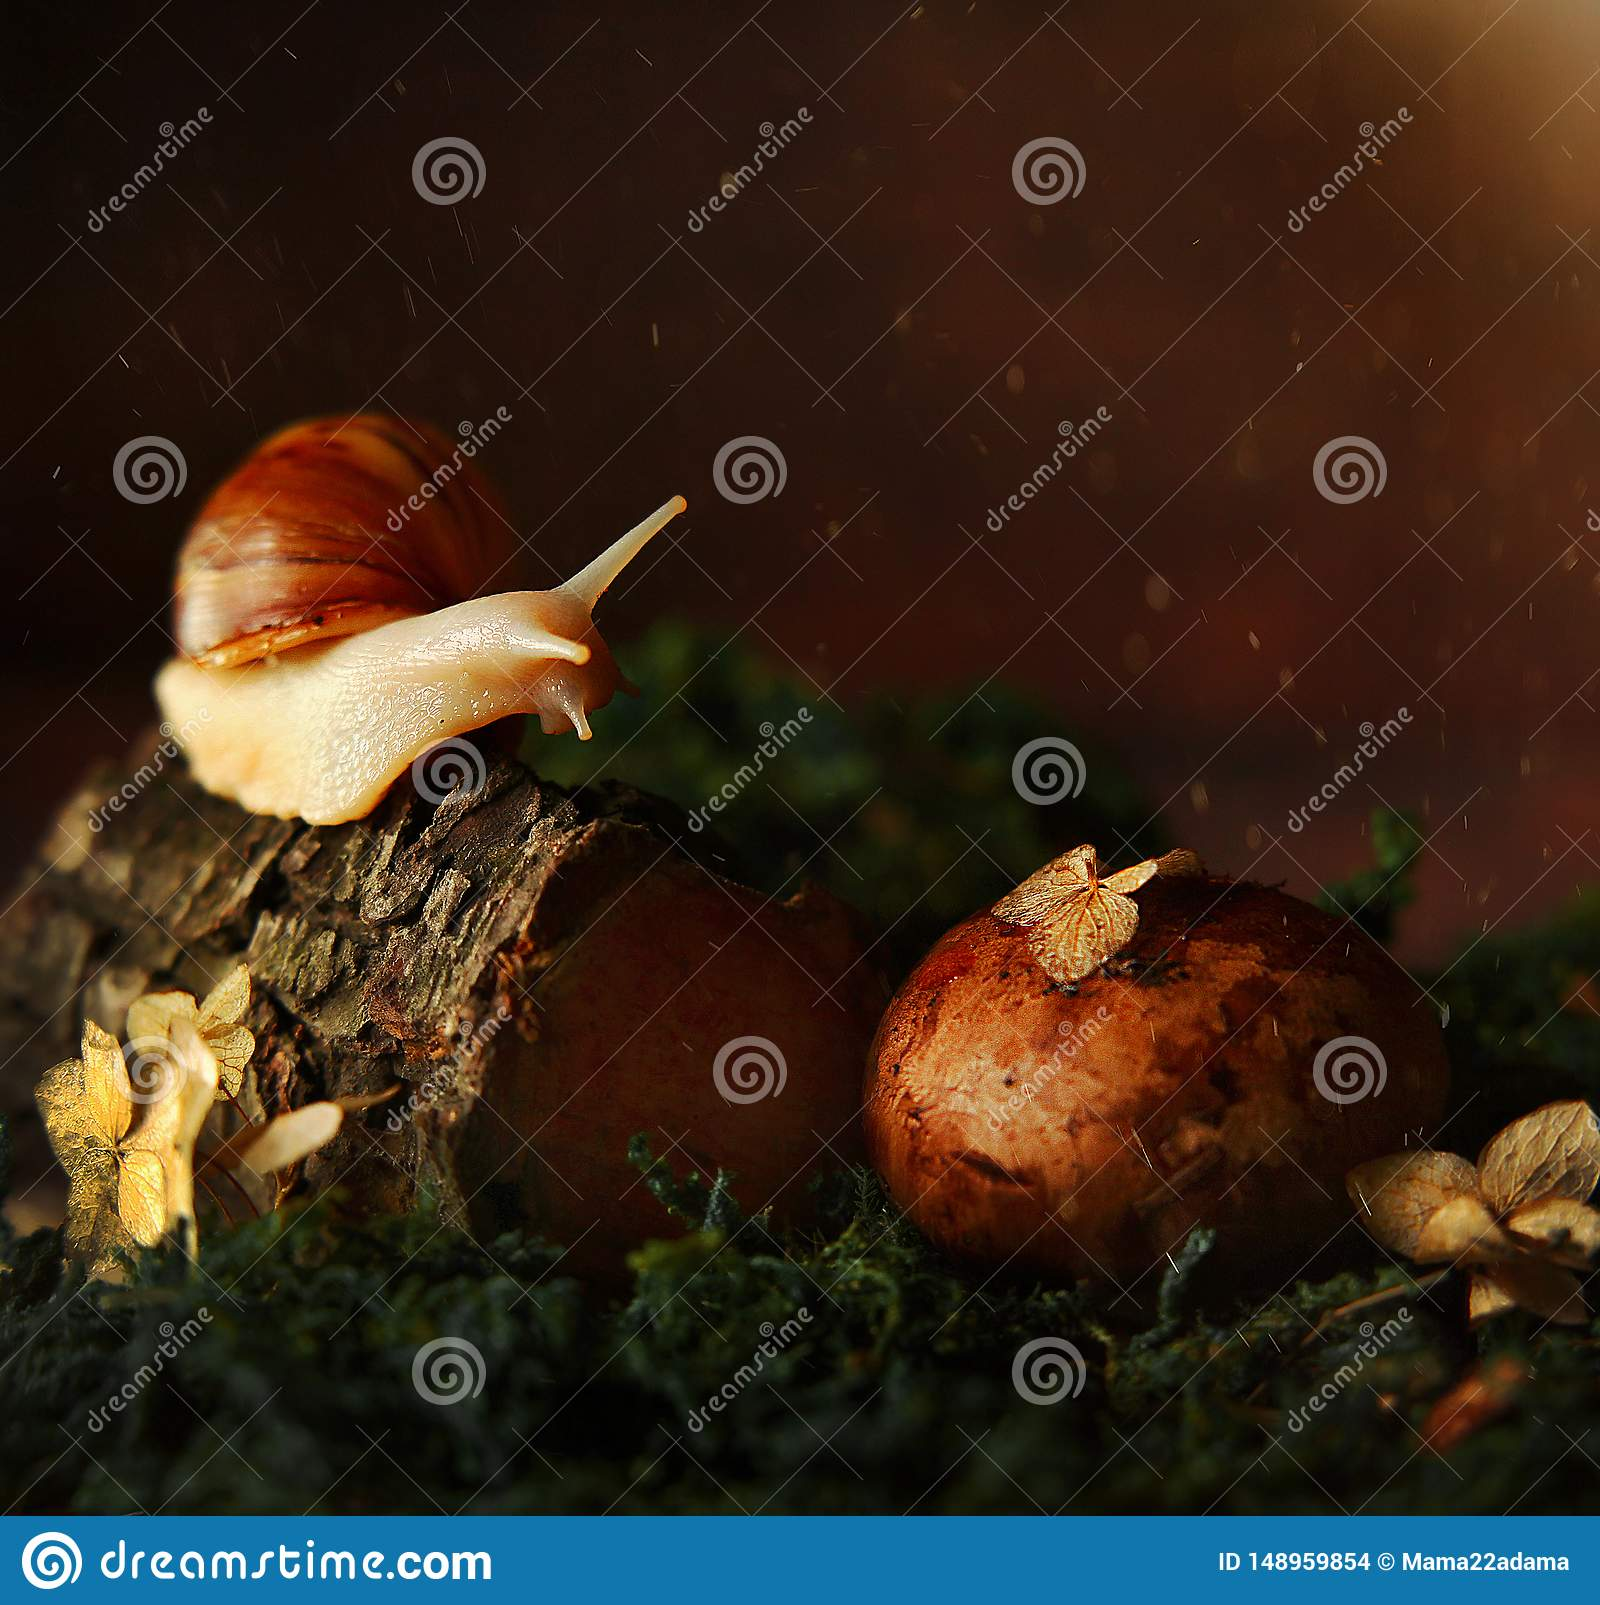 Snail in the forest on a tree